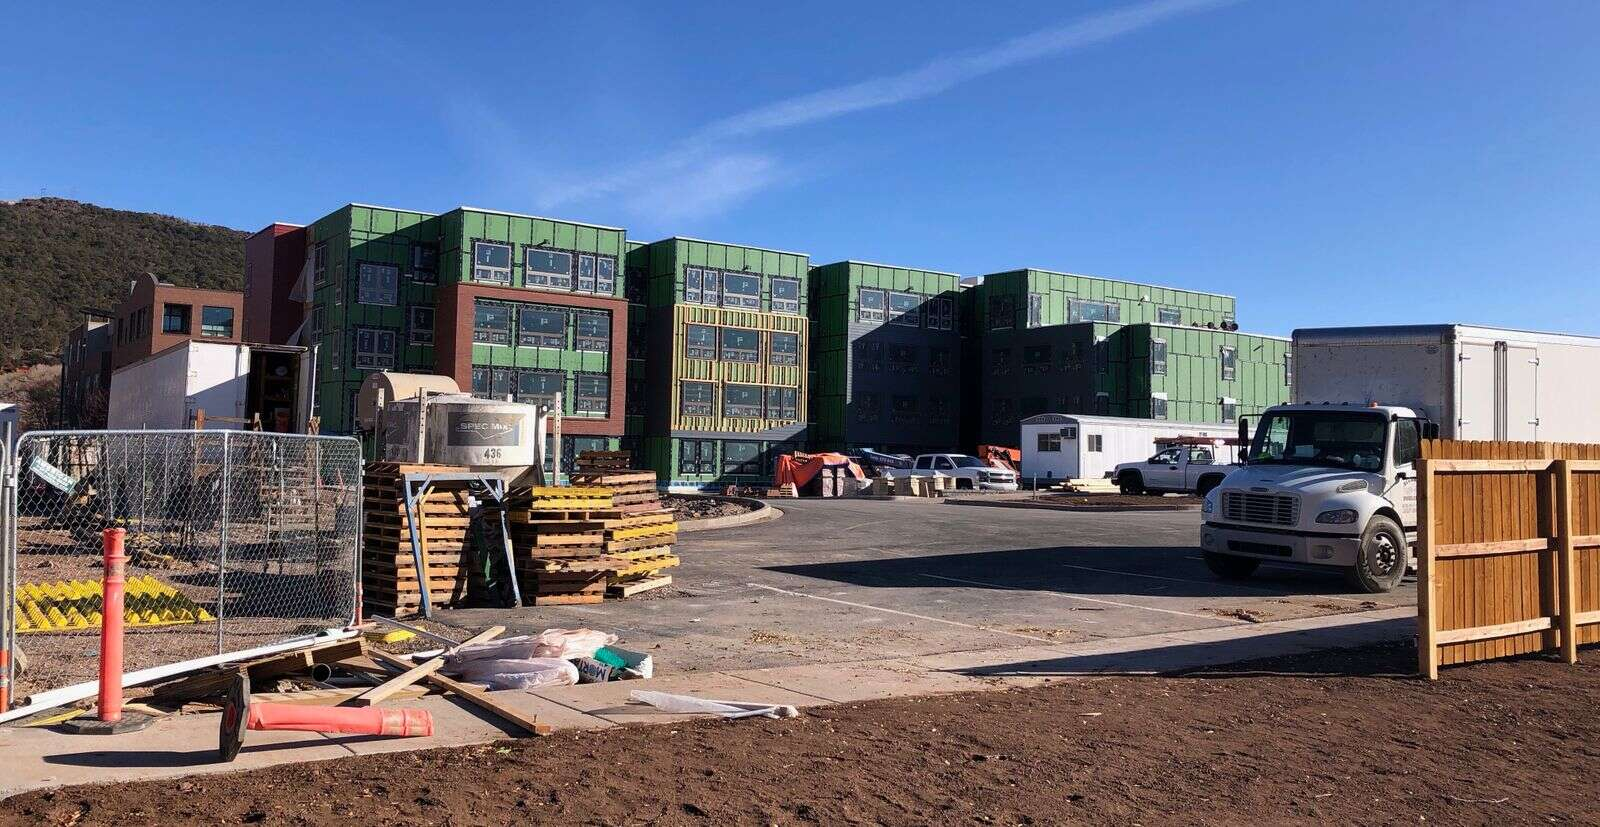 Aspen Skiing Co.'s workforce housing project is taking shape in Willits. It will be completed in 2021. (Scott Condon/The Aspen Times)